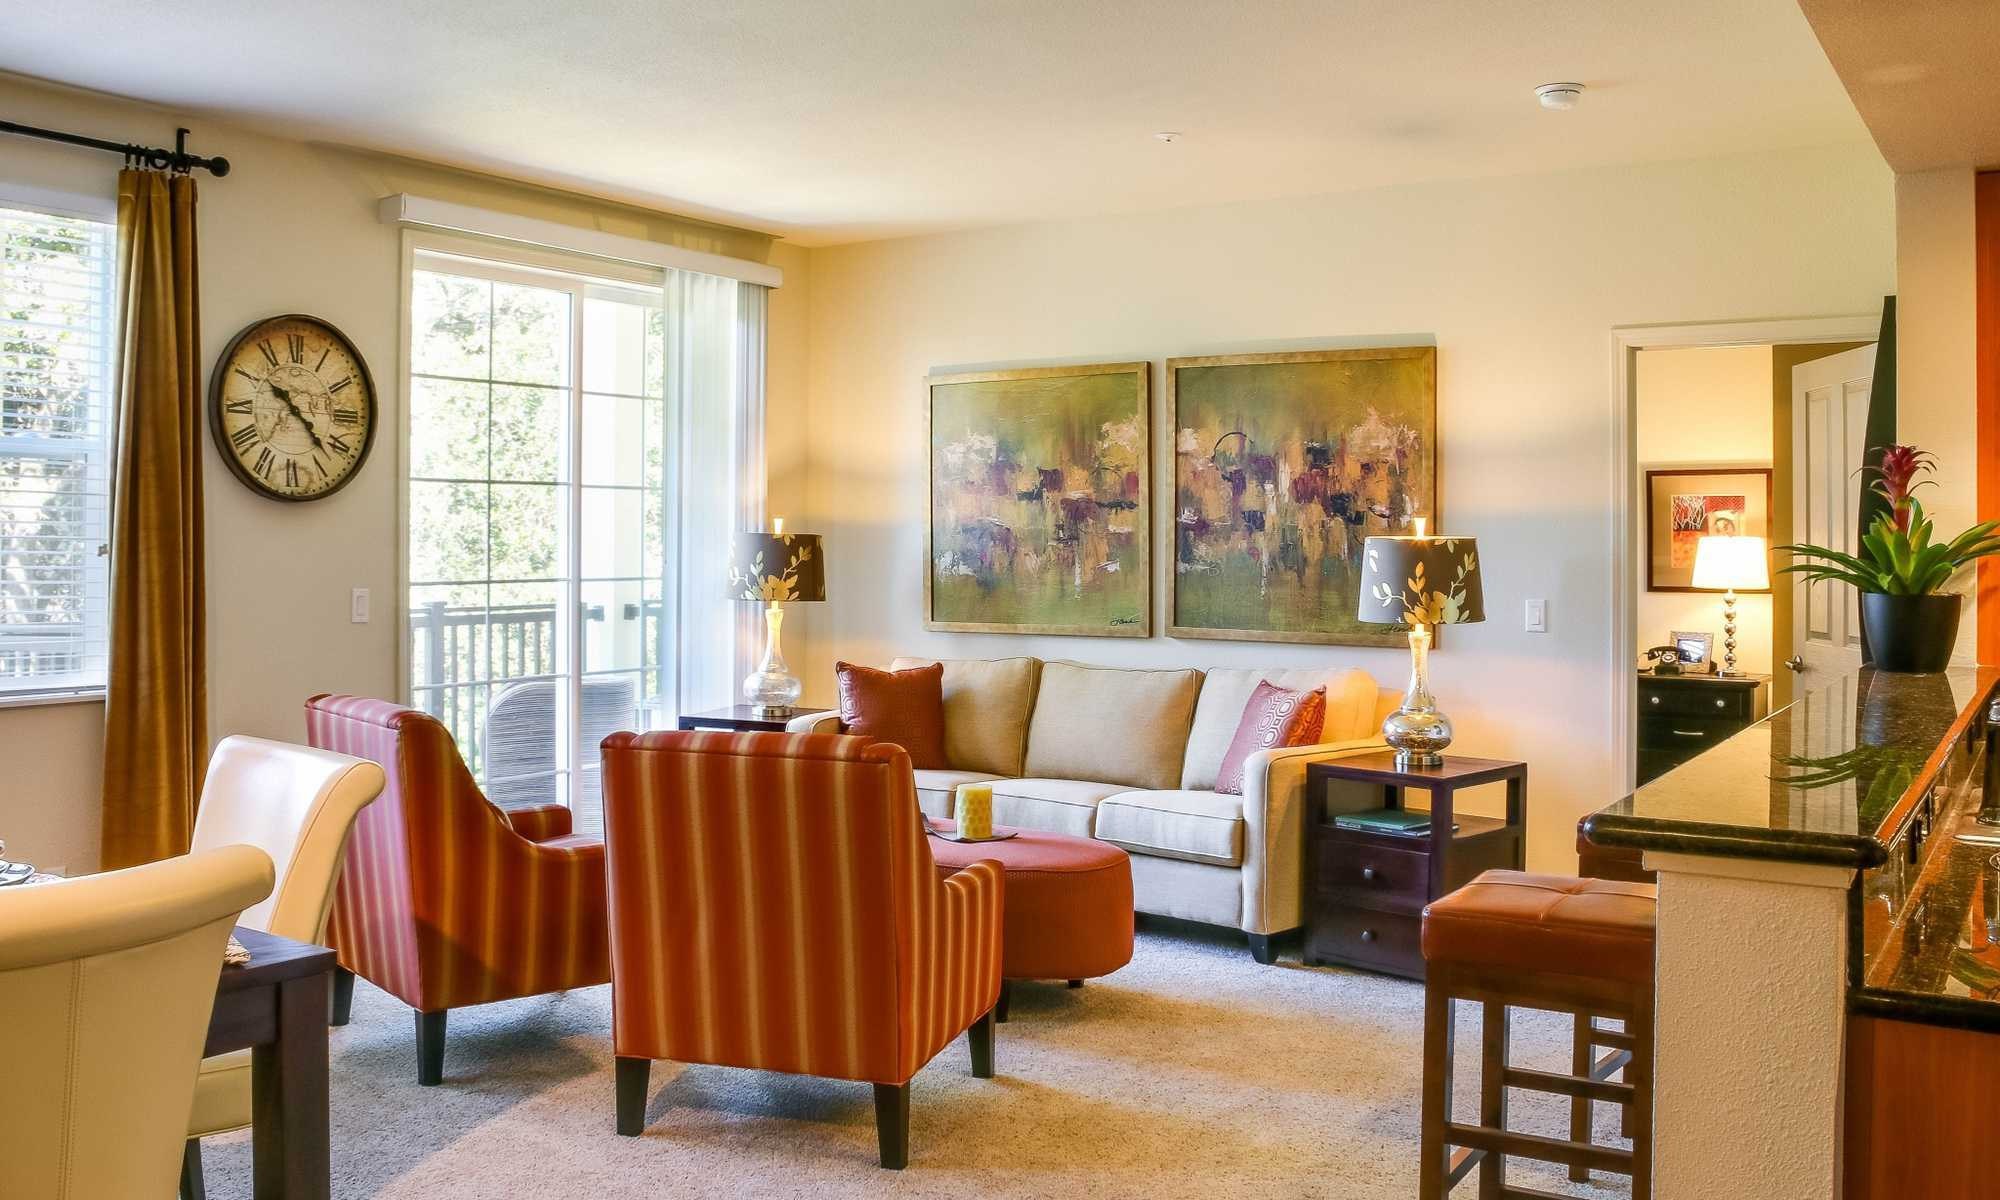 Bright Living Room at the Apartments in Santa Rosa